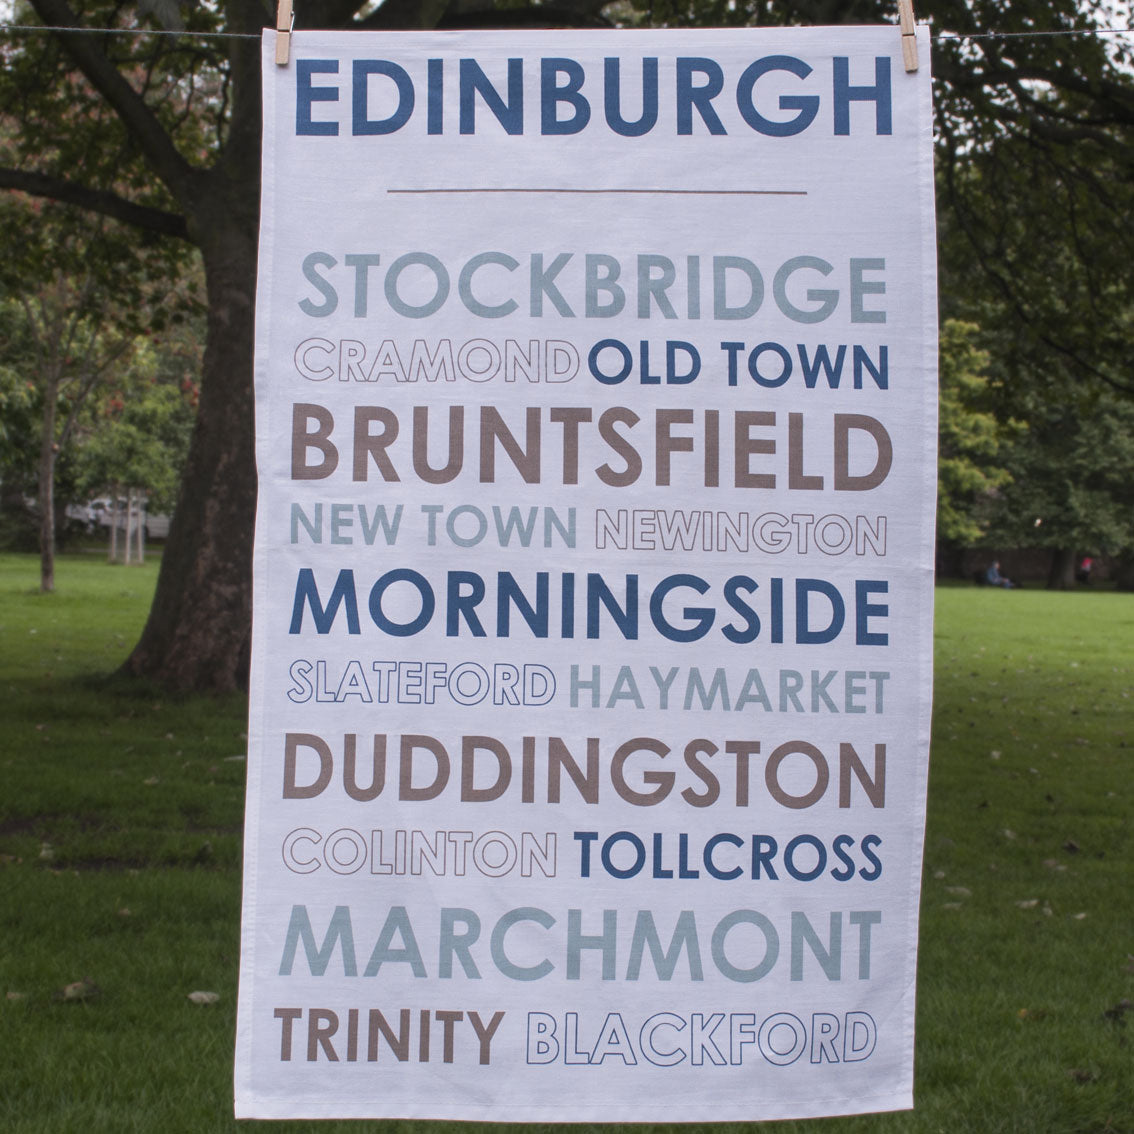 Full view of Edinburgh tea towel